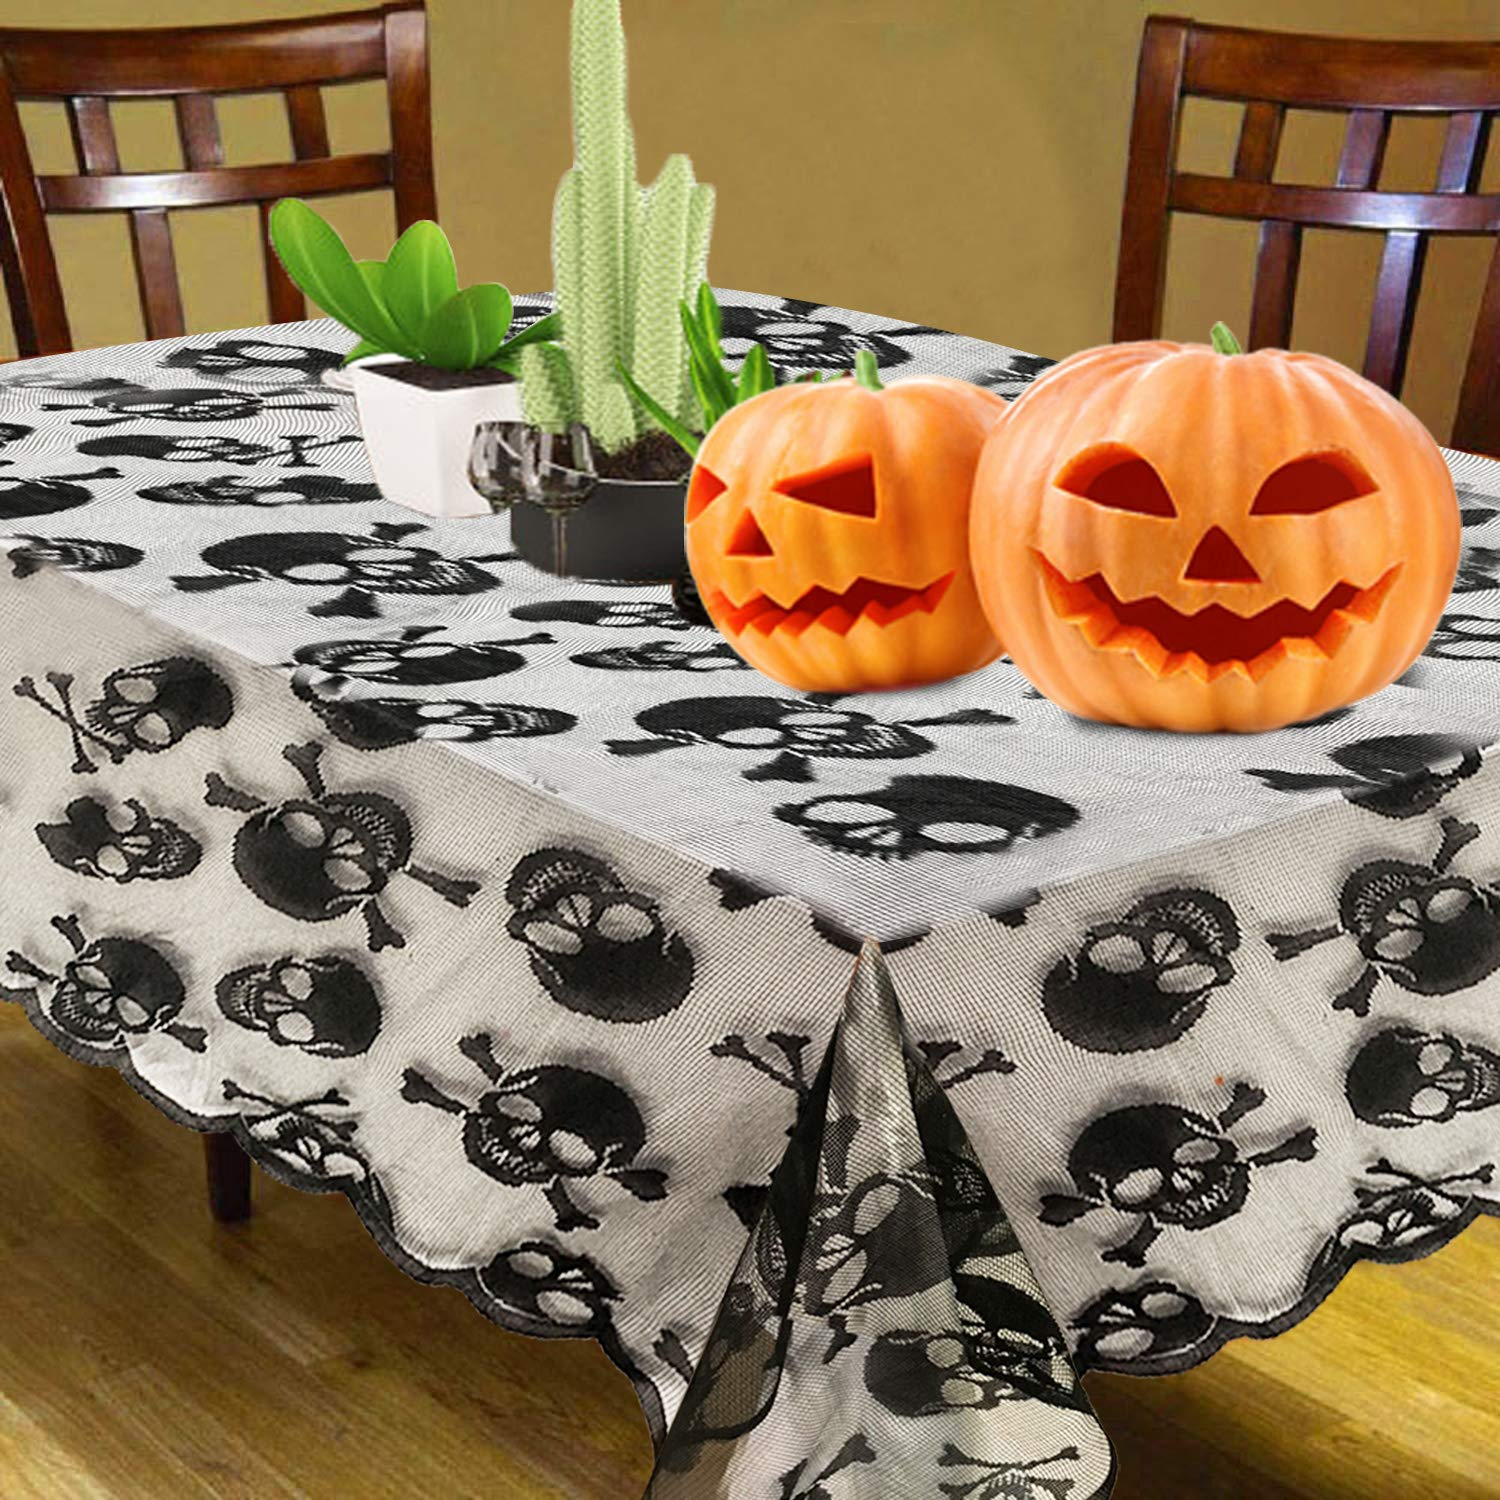 2020 Tablecloth New Style Skull Black Lace Festive Decoration for Kitchen Dinner Parties Hollow Out Rectangular Table Cover